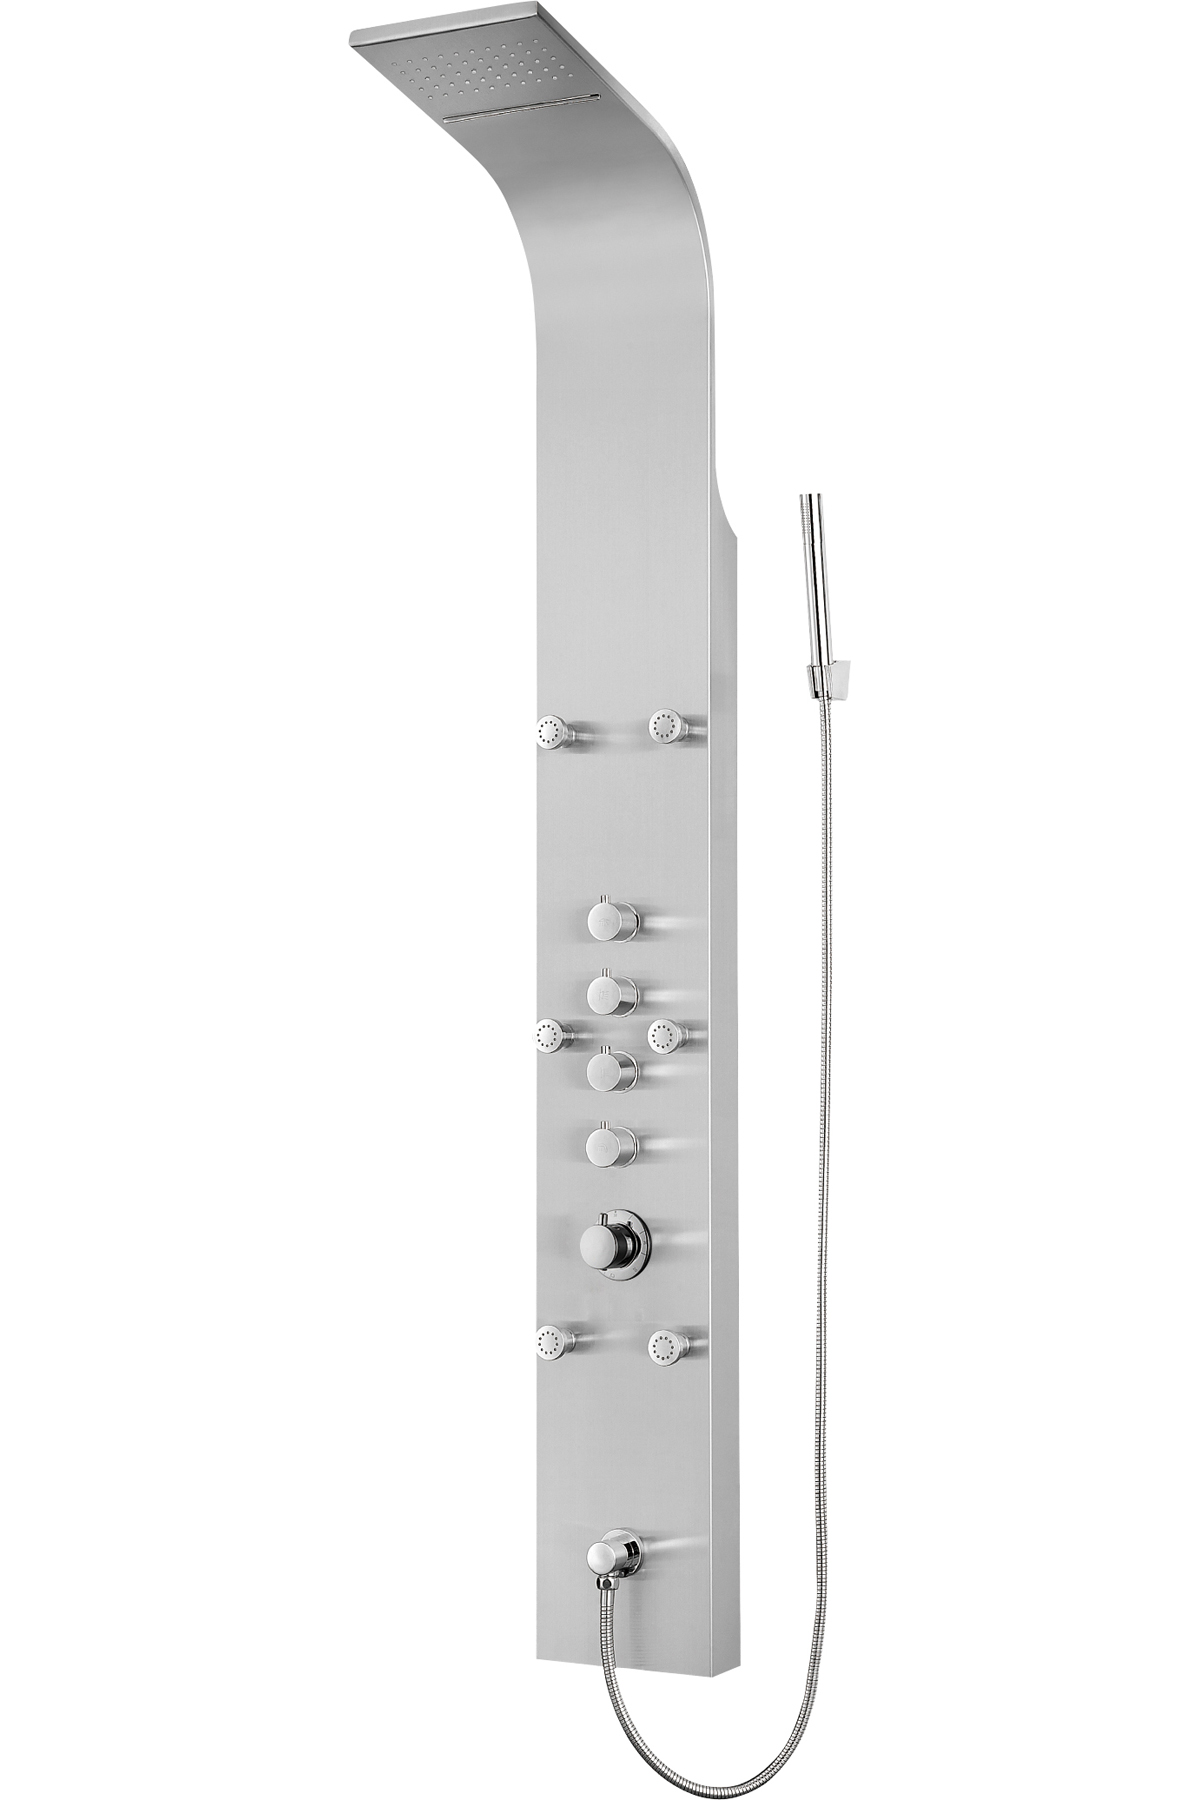 Whirlpool Badewanne Stiftung Warentest Stainless Steel Shower Panel Rain Style Massage Jets